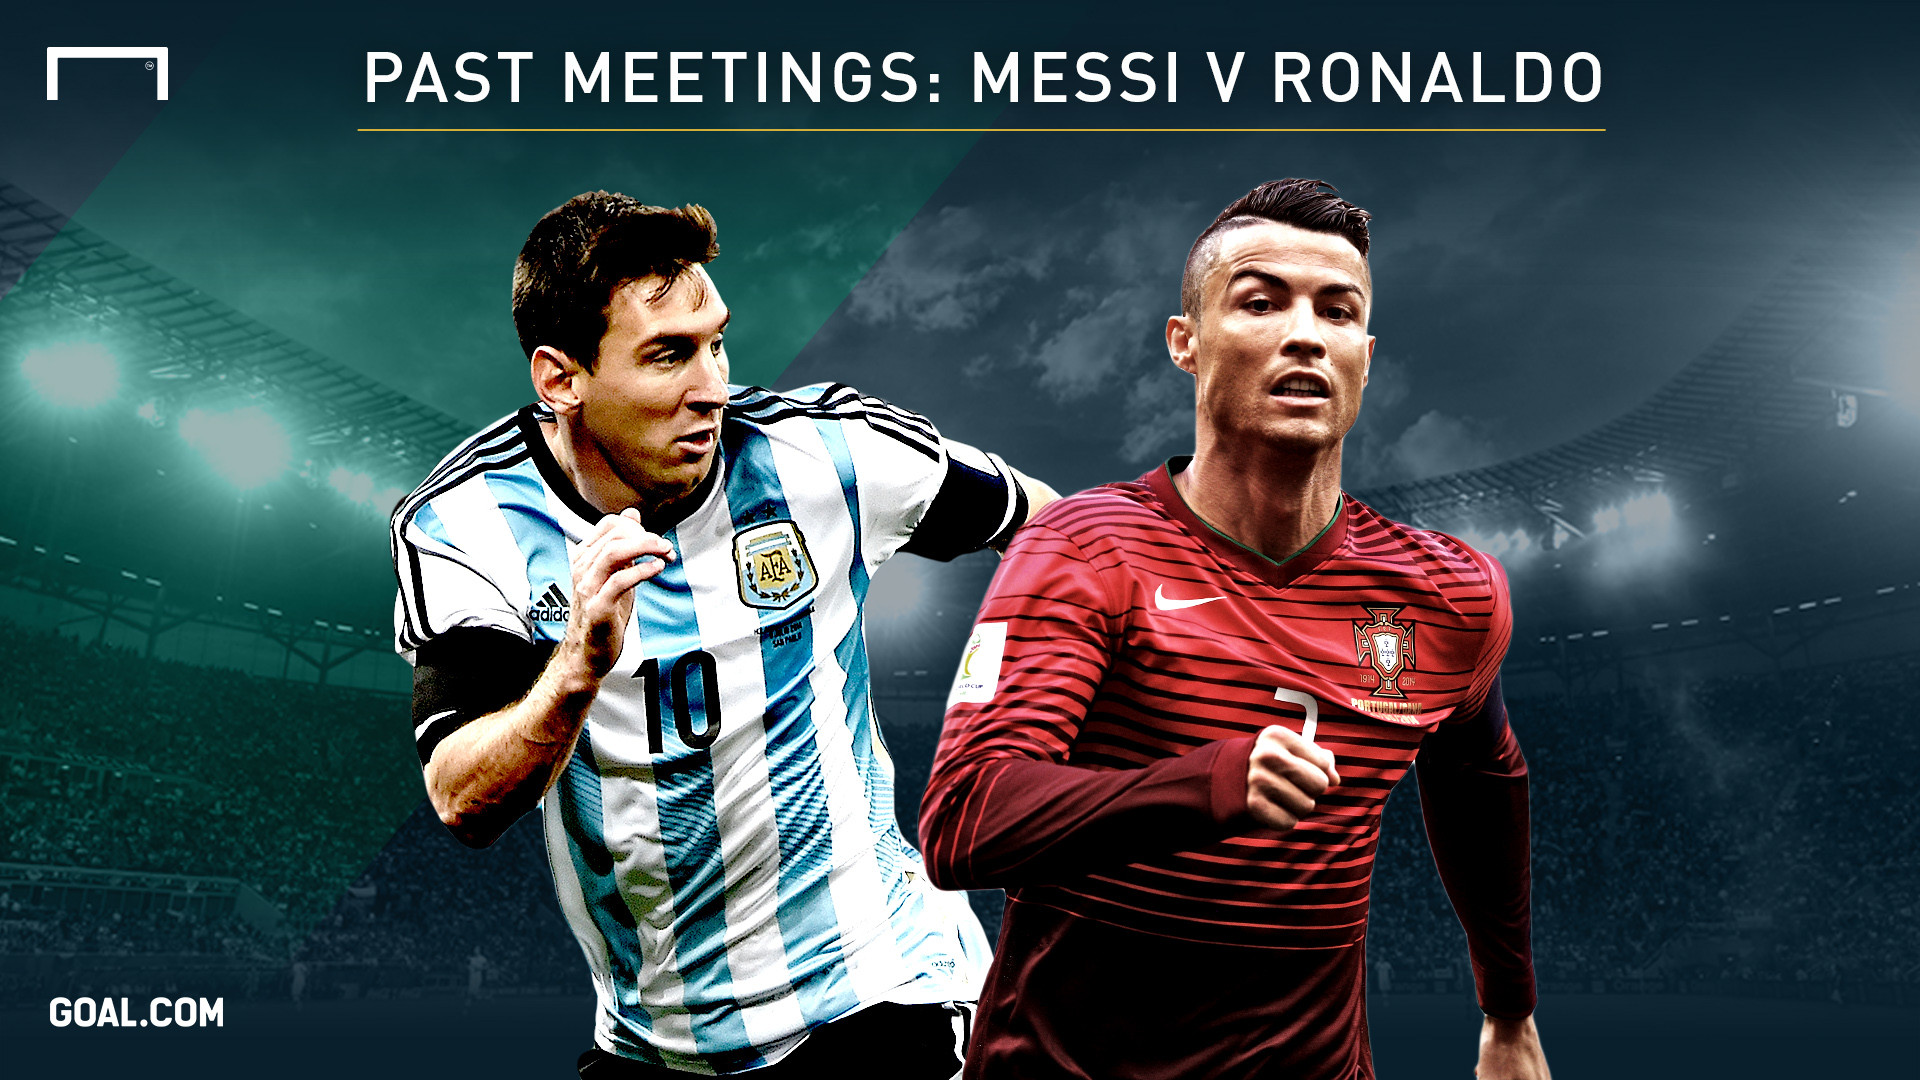 messi vs ronaldo full hd wallpaper